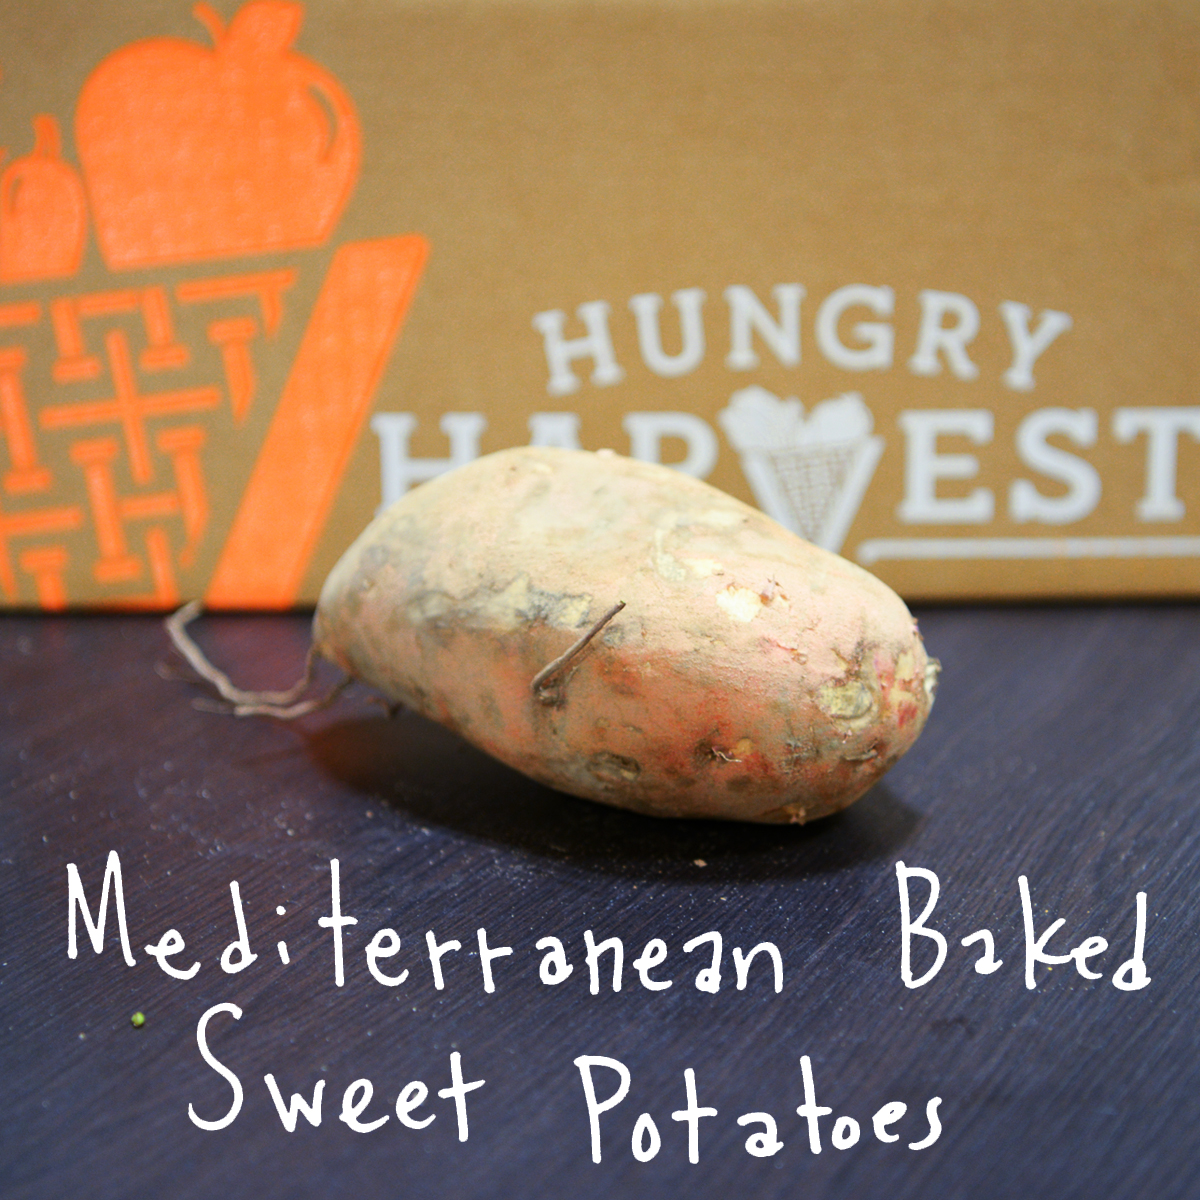 Baked sweet potatoes topped with roasted chickpeas, garlic-herb sauce and a parsley-tomato salad make for a delicious, fresh, and healthy dinner. - Find the recipe at: Minimalist Baker